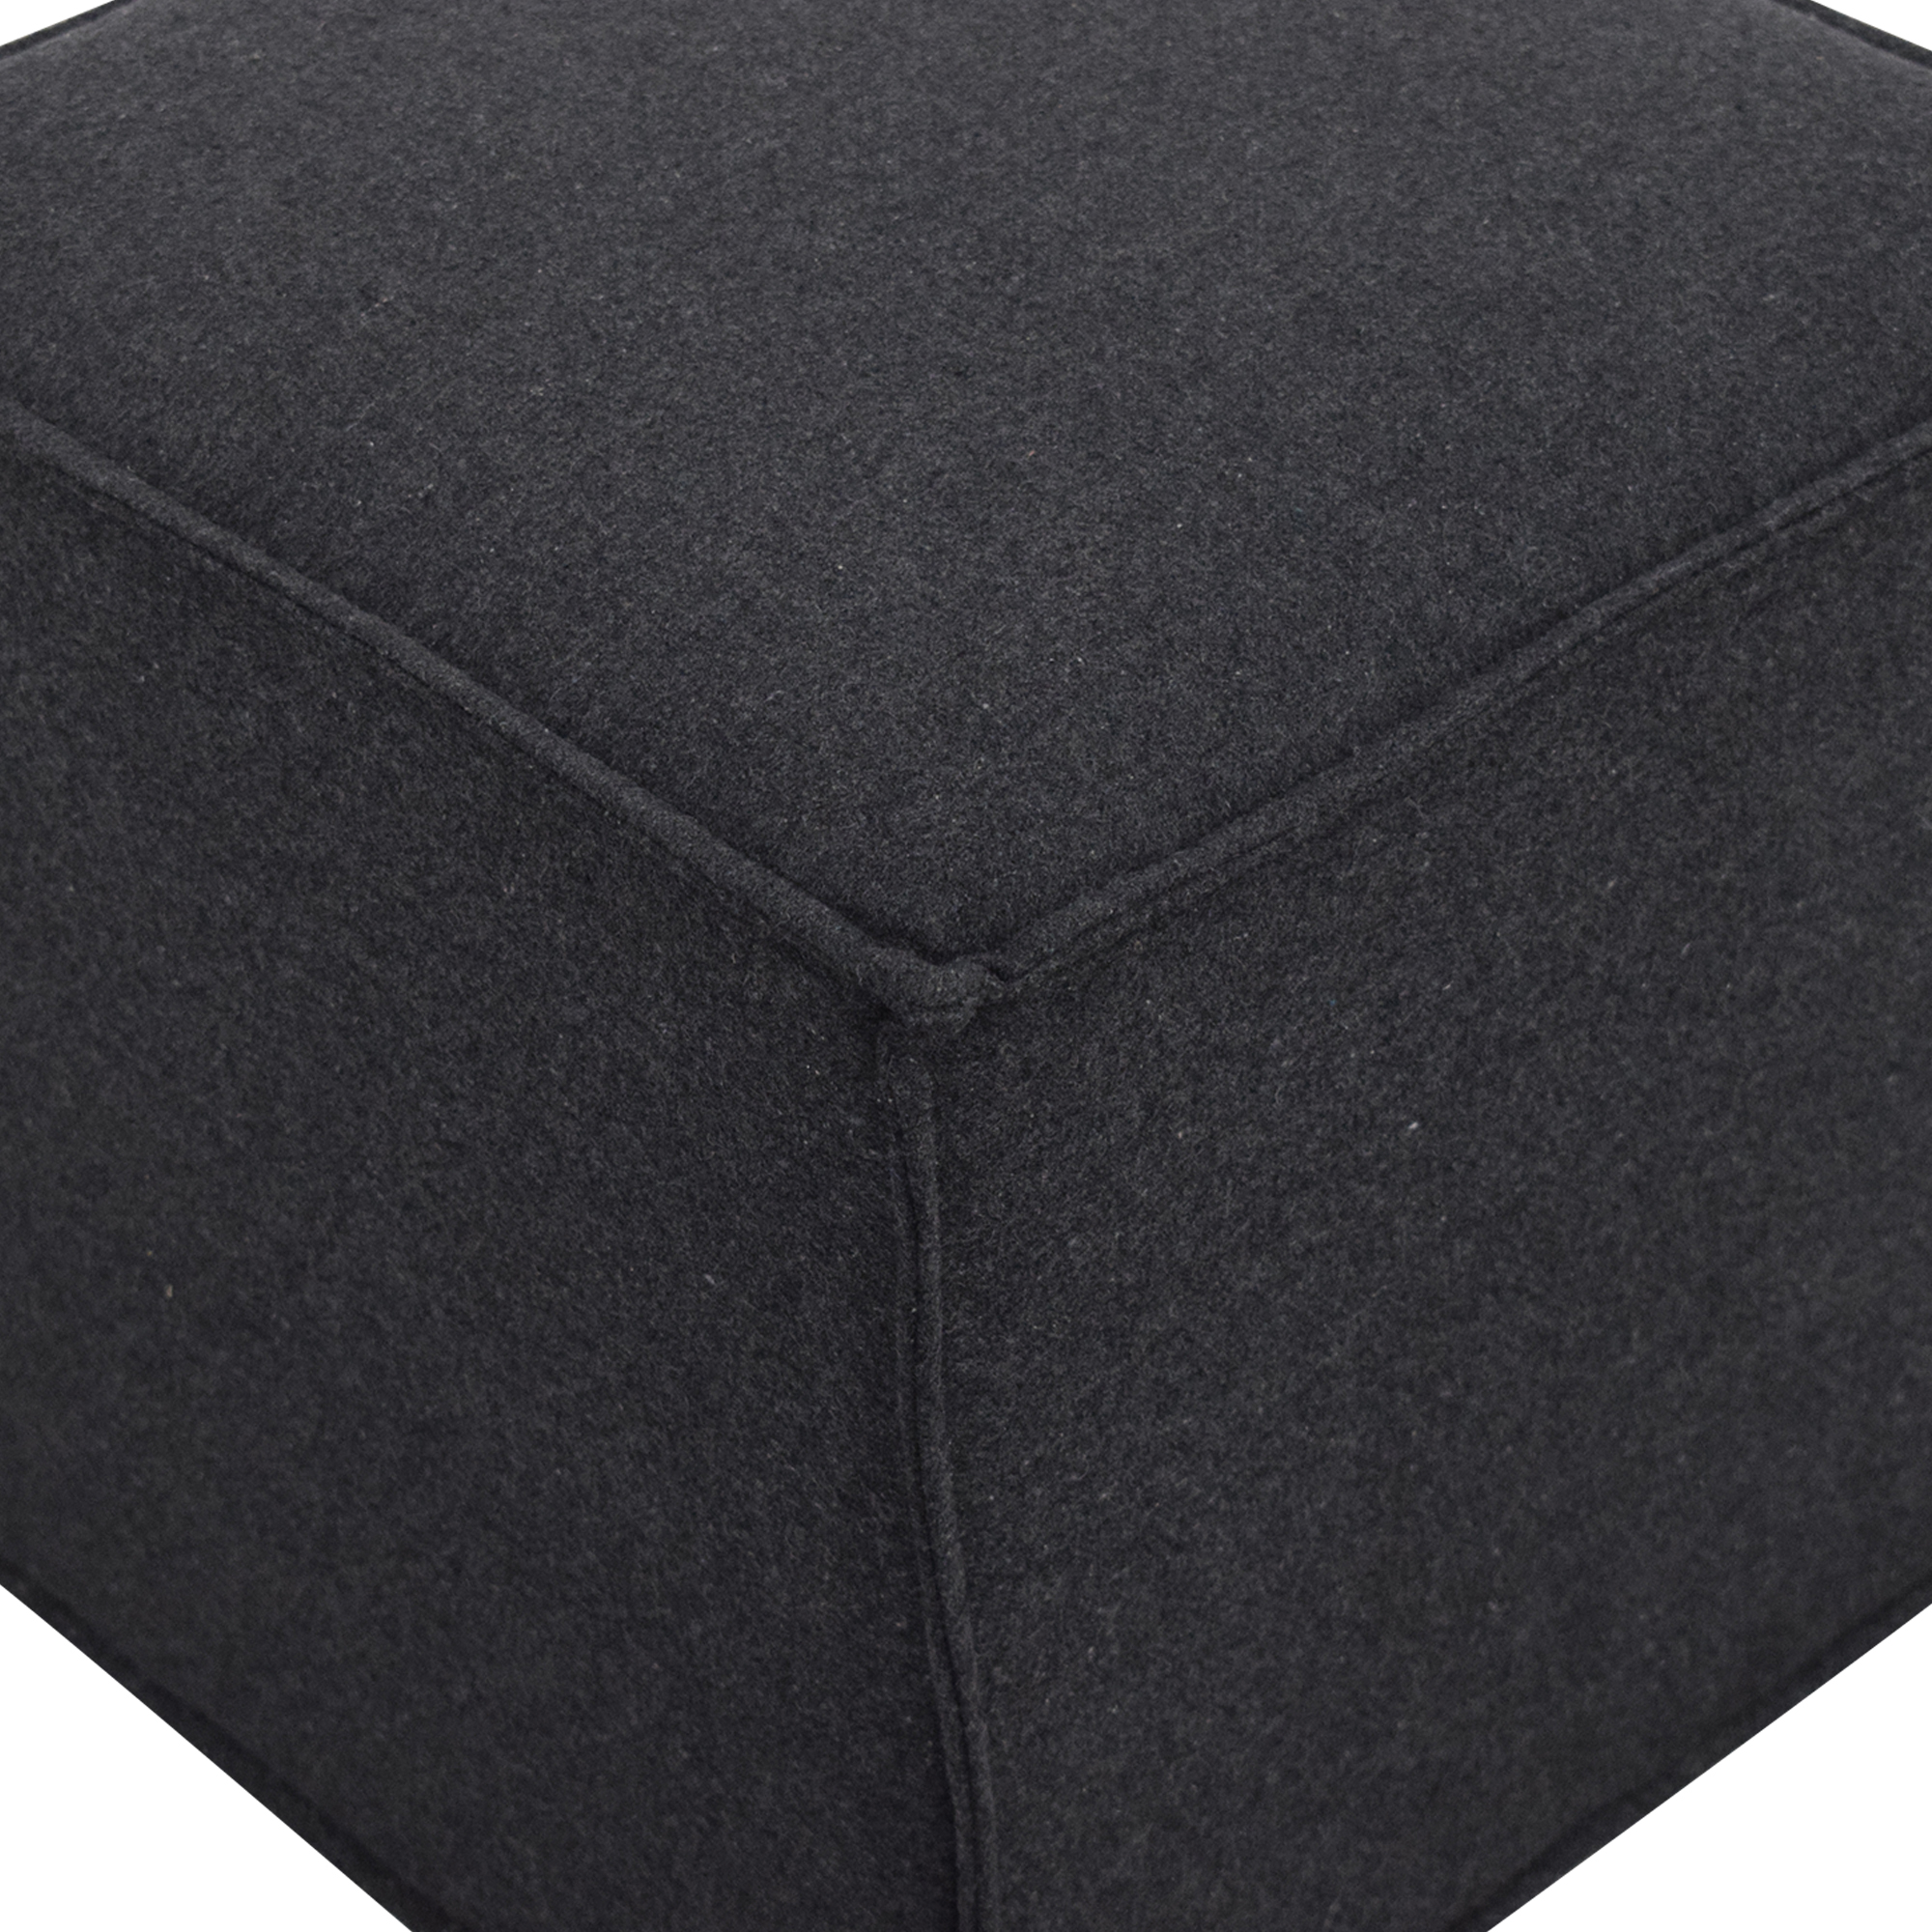 Gus Modern Upholstered Ottoman or Stool / Chairs